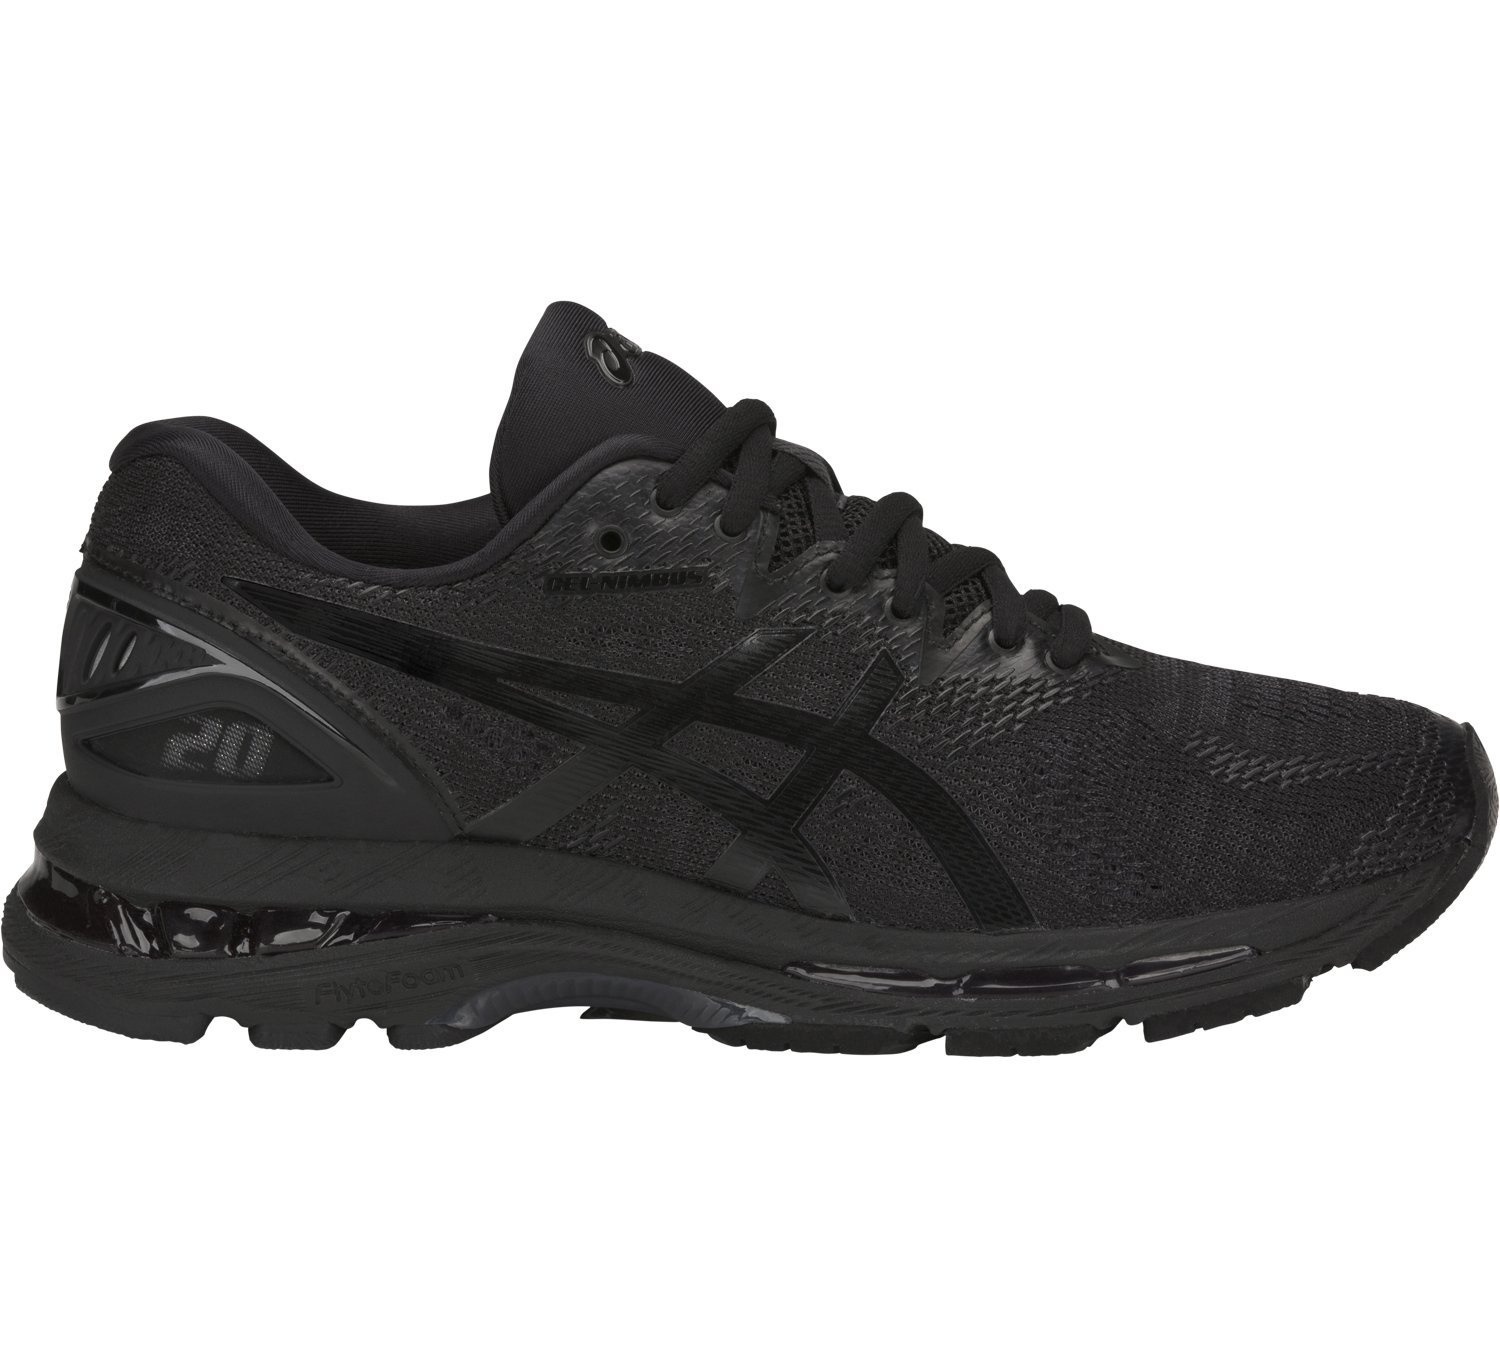 ASICS Women's Gel-Nimbus 20 Running Shoe B071LFPWV4 7.5 B(M) US|Black/Black/Carbon